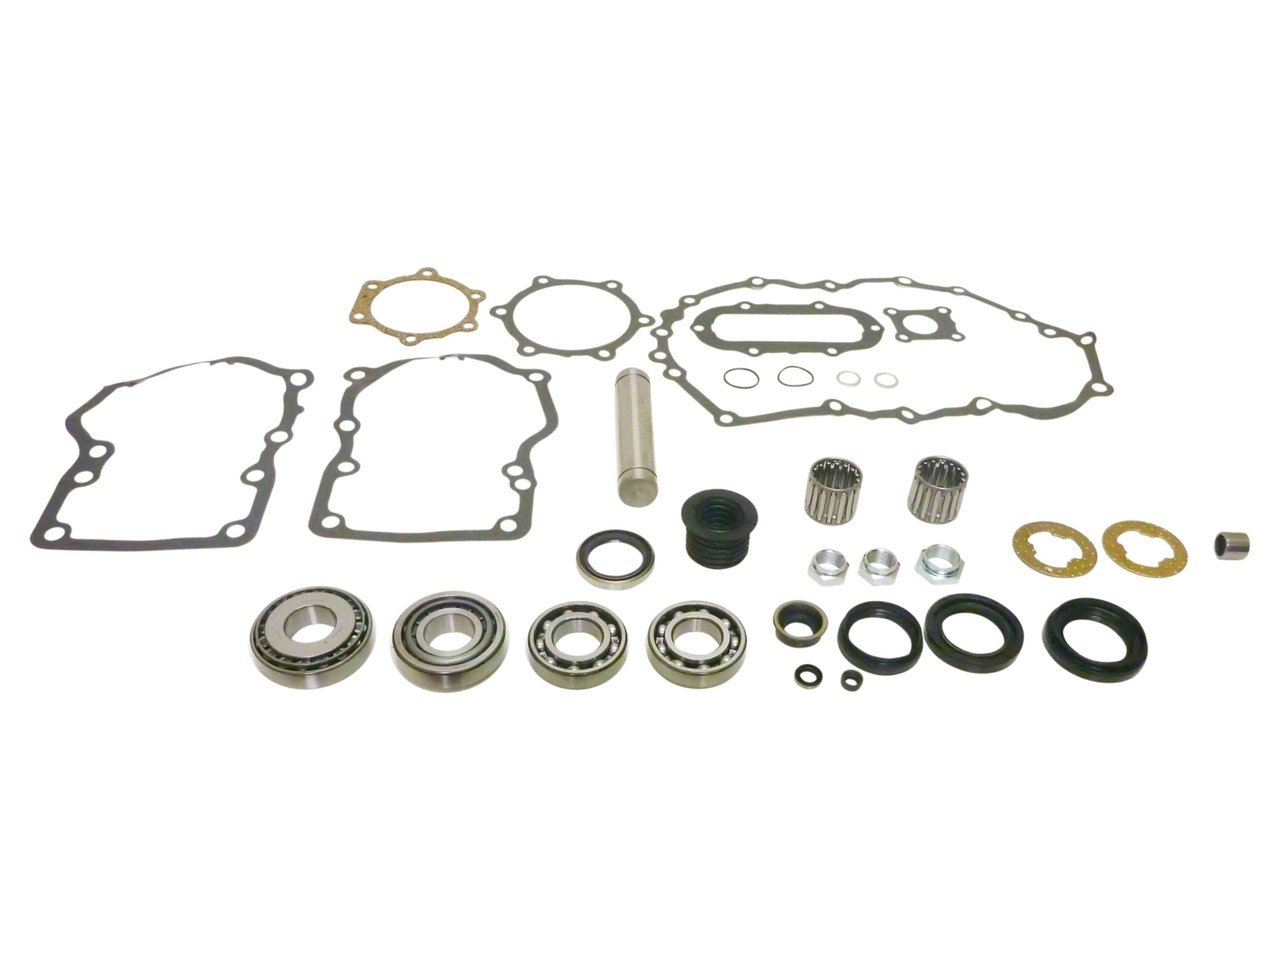 Transfer Case Kit suitable for Landcruiser 60 70 Series